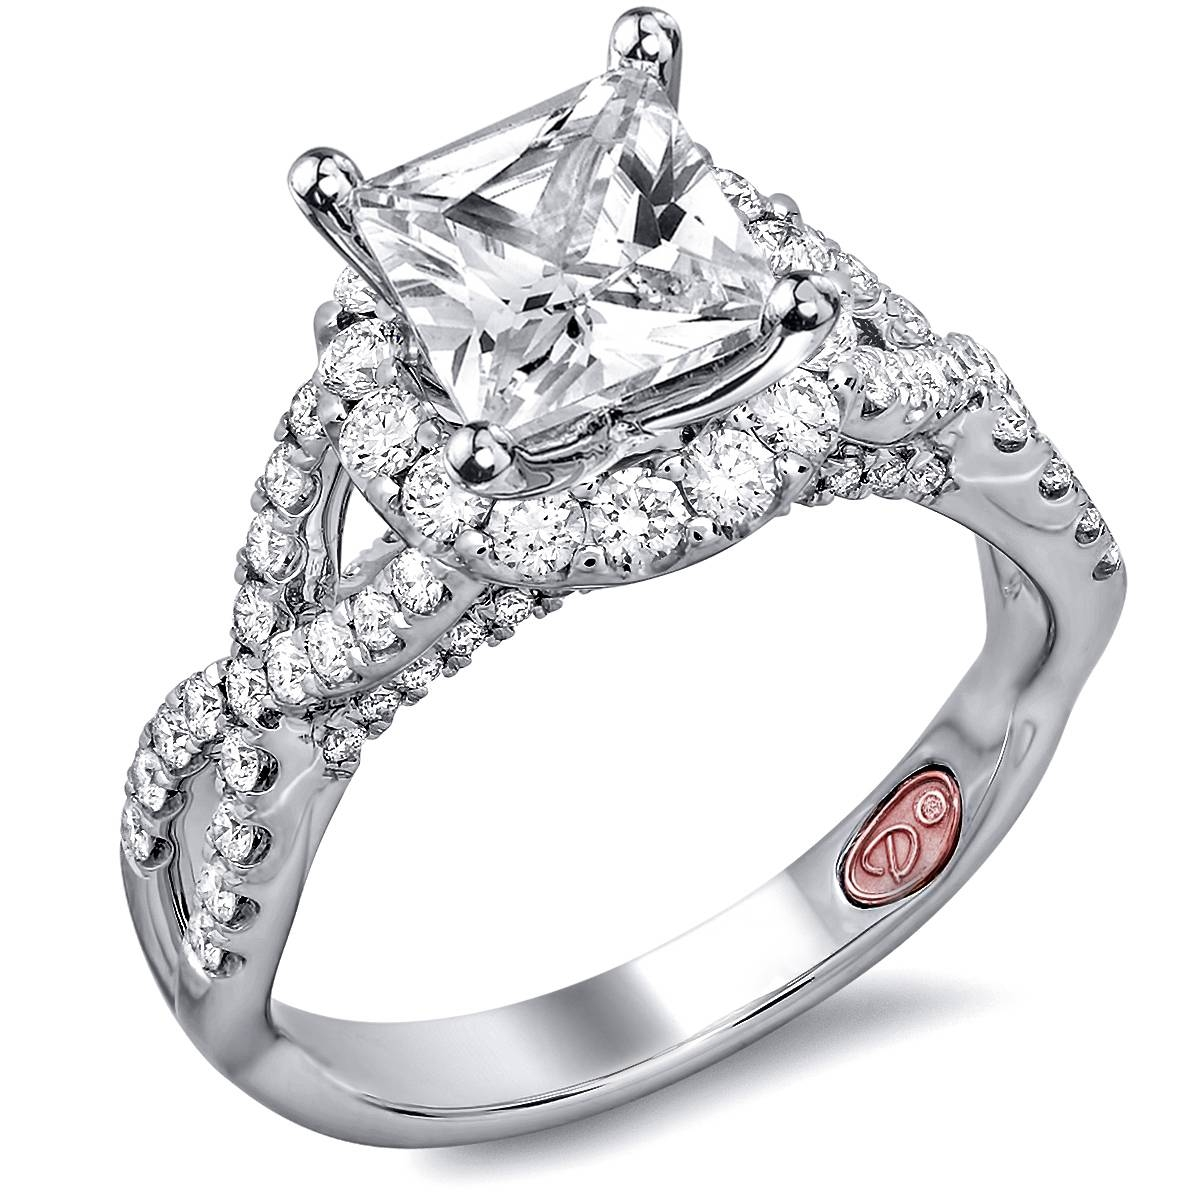 Twisted Princess Cut Engagement Rings | Demarco Bridal Jewelry Within Princess Engagement Rings (View 15 of 15)